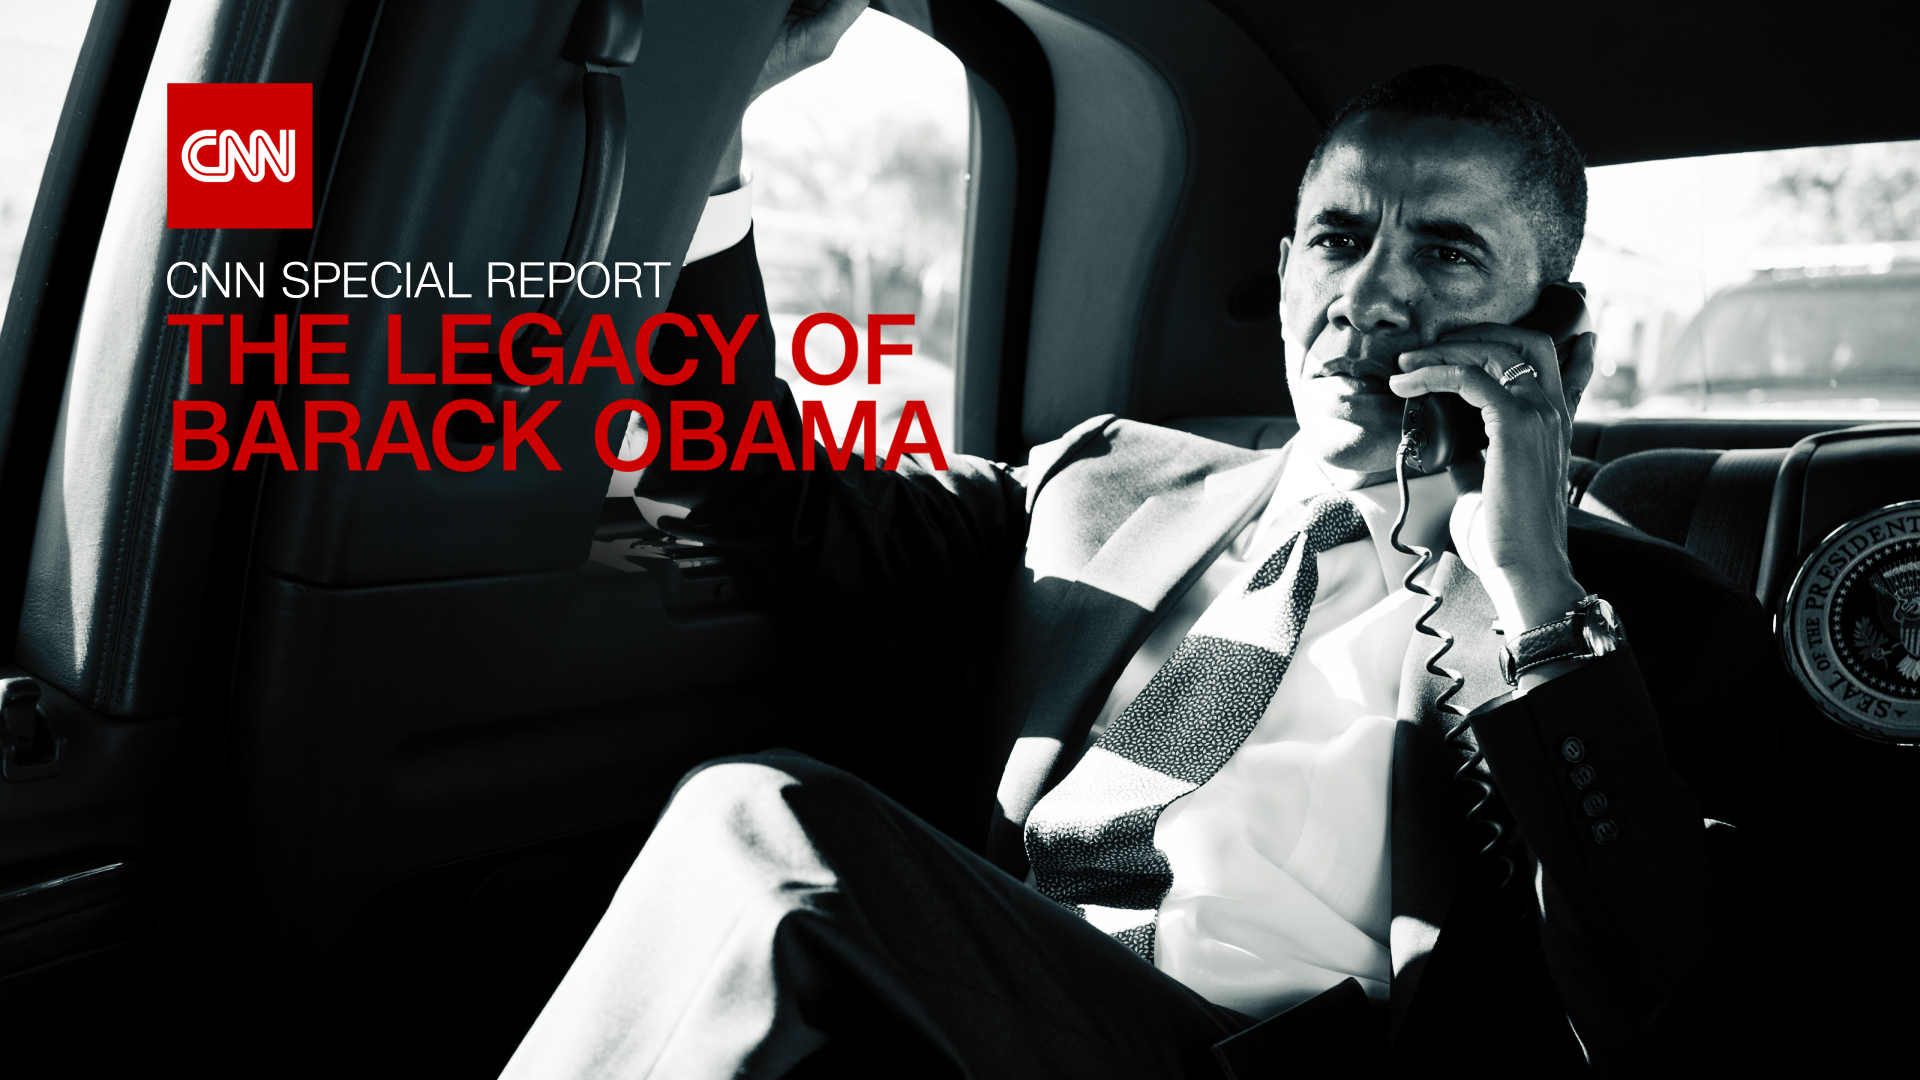 'THE LEGACY OF BARACK OBAMA' – Fareed Zakaria Explores the 44th President's Tenure in New Primetime Special